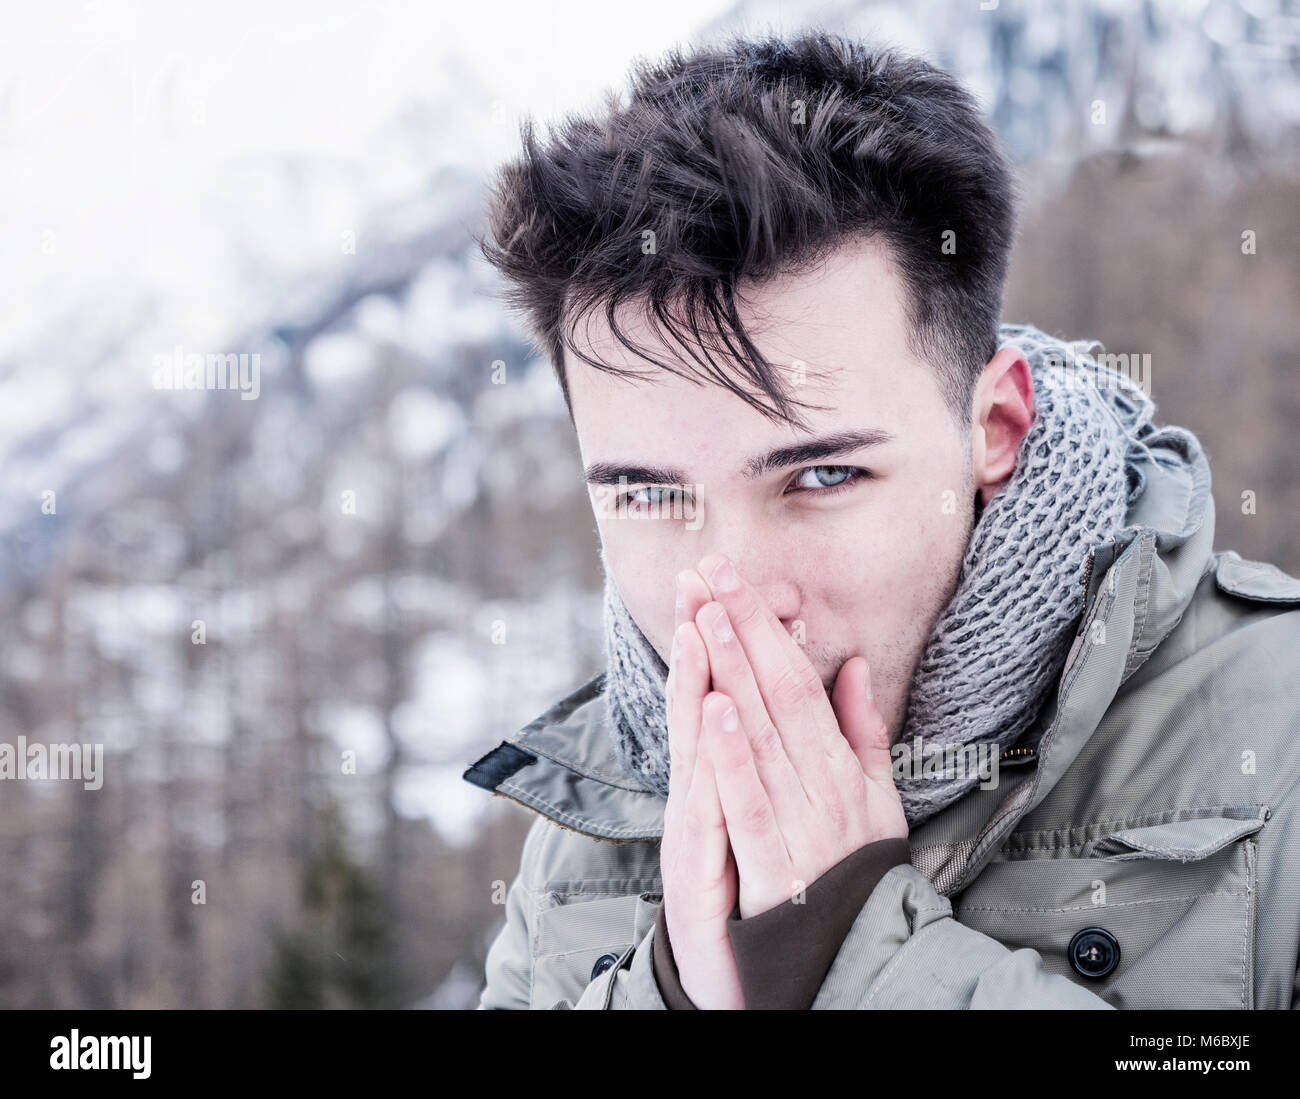 Young man posing at camera in snows - Stock Image